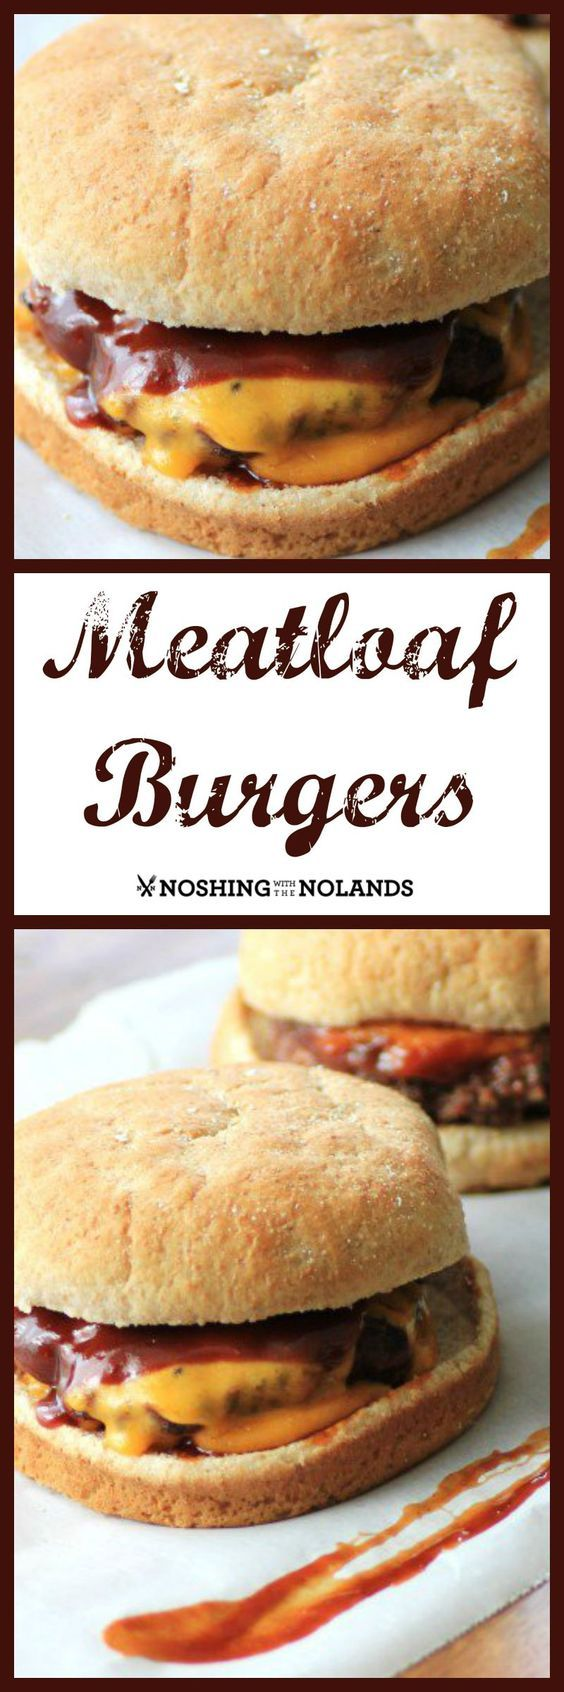 MWM - Meatloaf Burgers by Noshing With The Nolands is a perfect blend of summer meets fall. Cheesy, saucy with the perfect taste of the best meatloaf!!